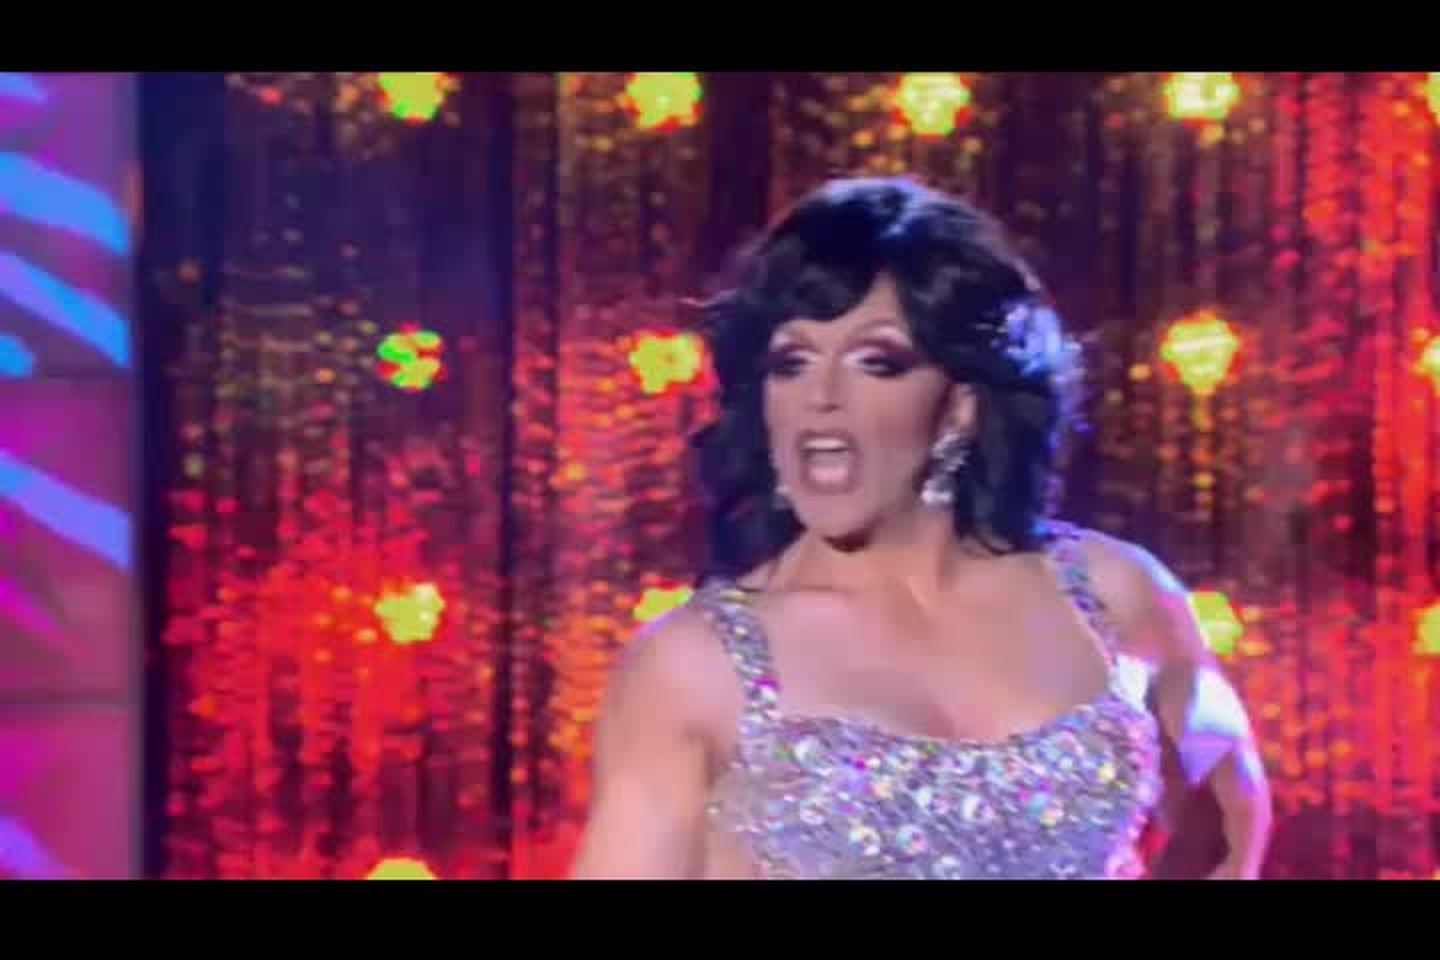 again, RuPaul? sending the one who performed best home? yeah, Kandy was amazing, but haven't we seen that over and over again? Kasha was, ironically, fresh.